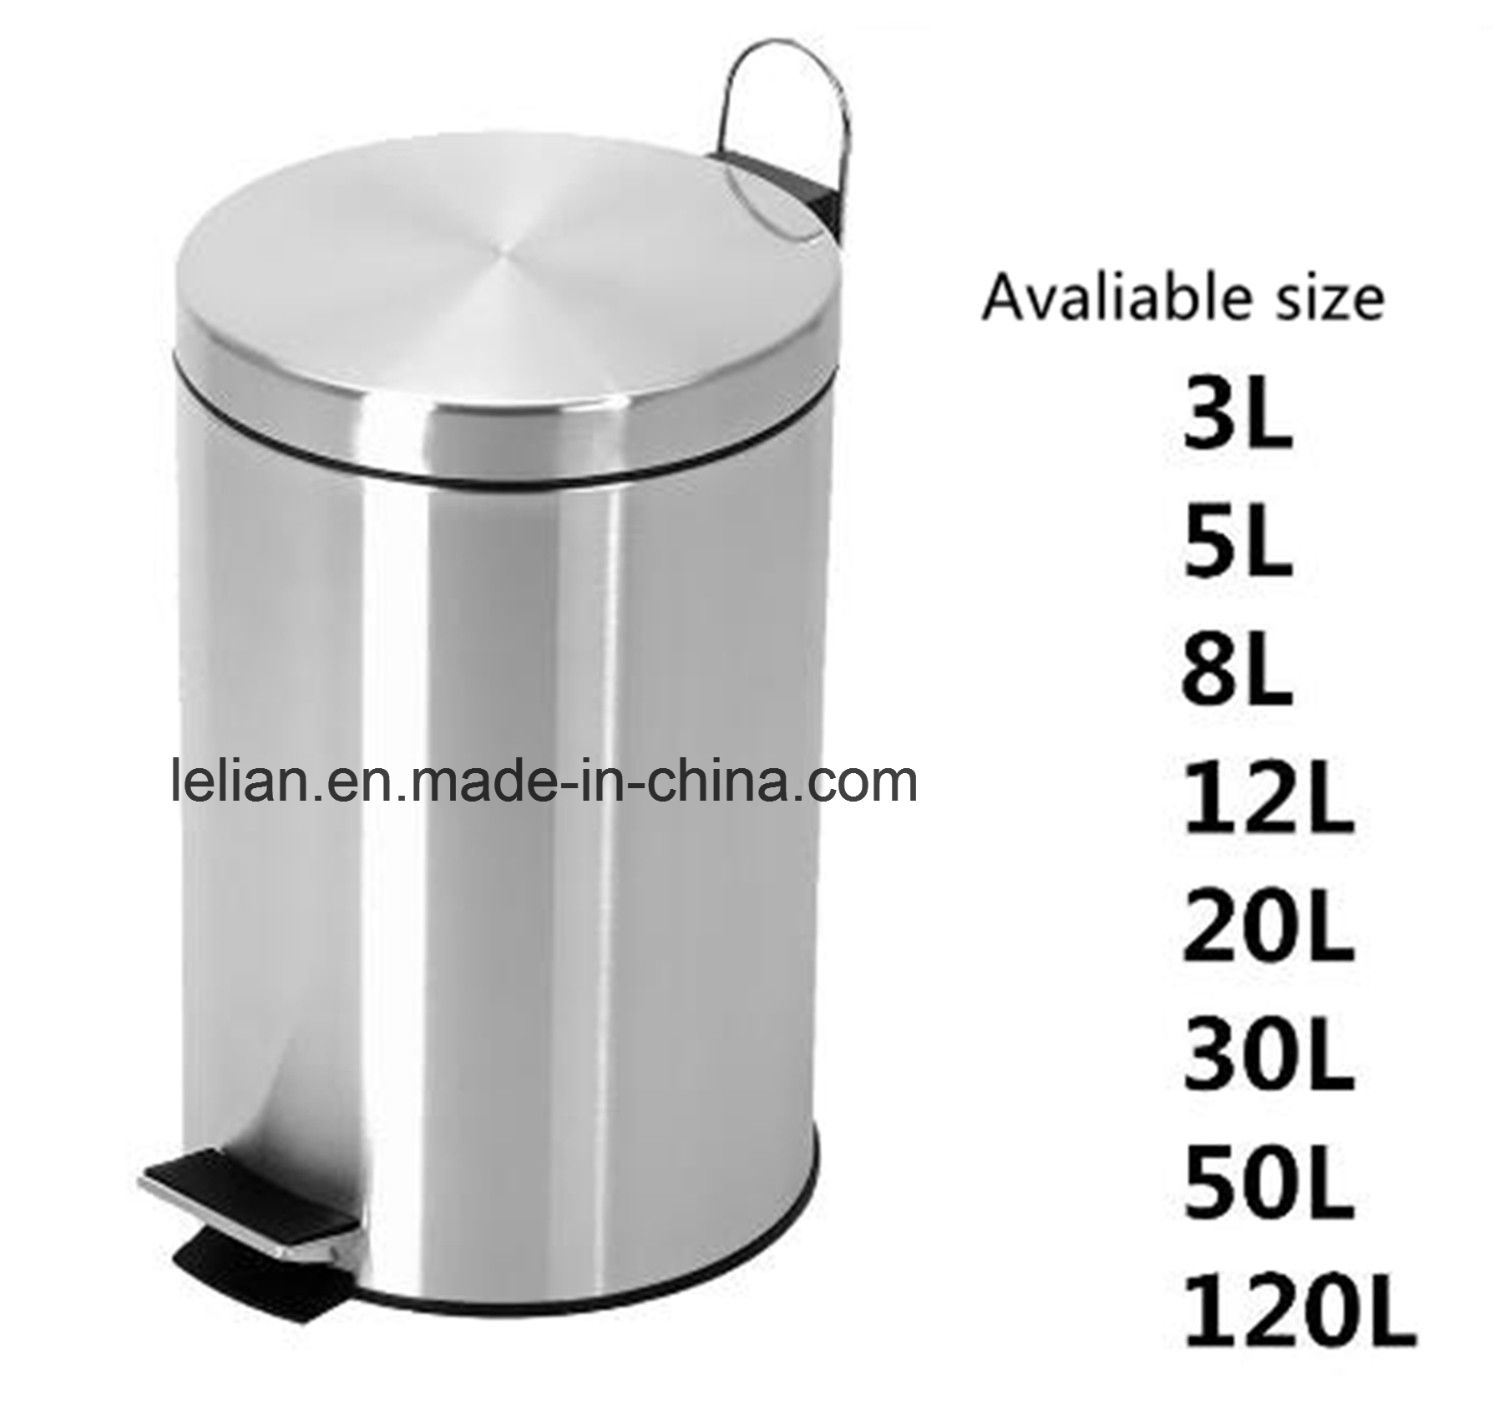 3L to 120L Stainless Steel Rubbish Can, Trash Bin